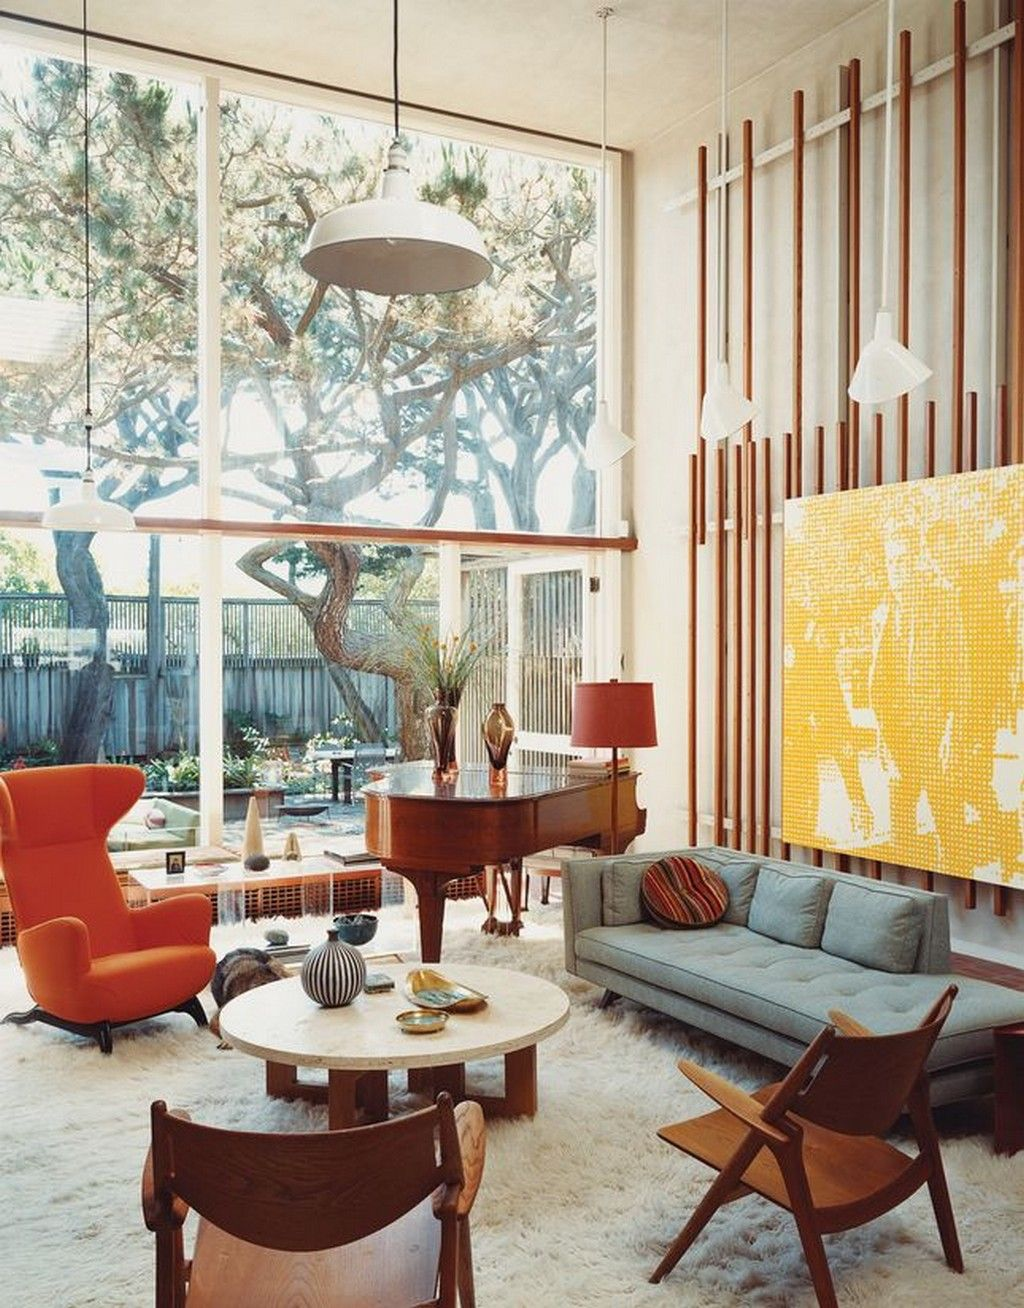 Living Room Design Styles Endearing Living Room 60S Retro Interior Design Style With Small Round Inspiration